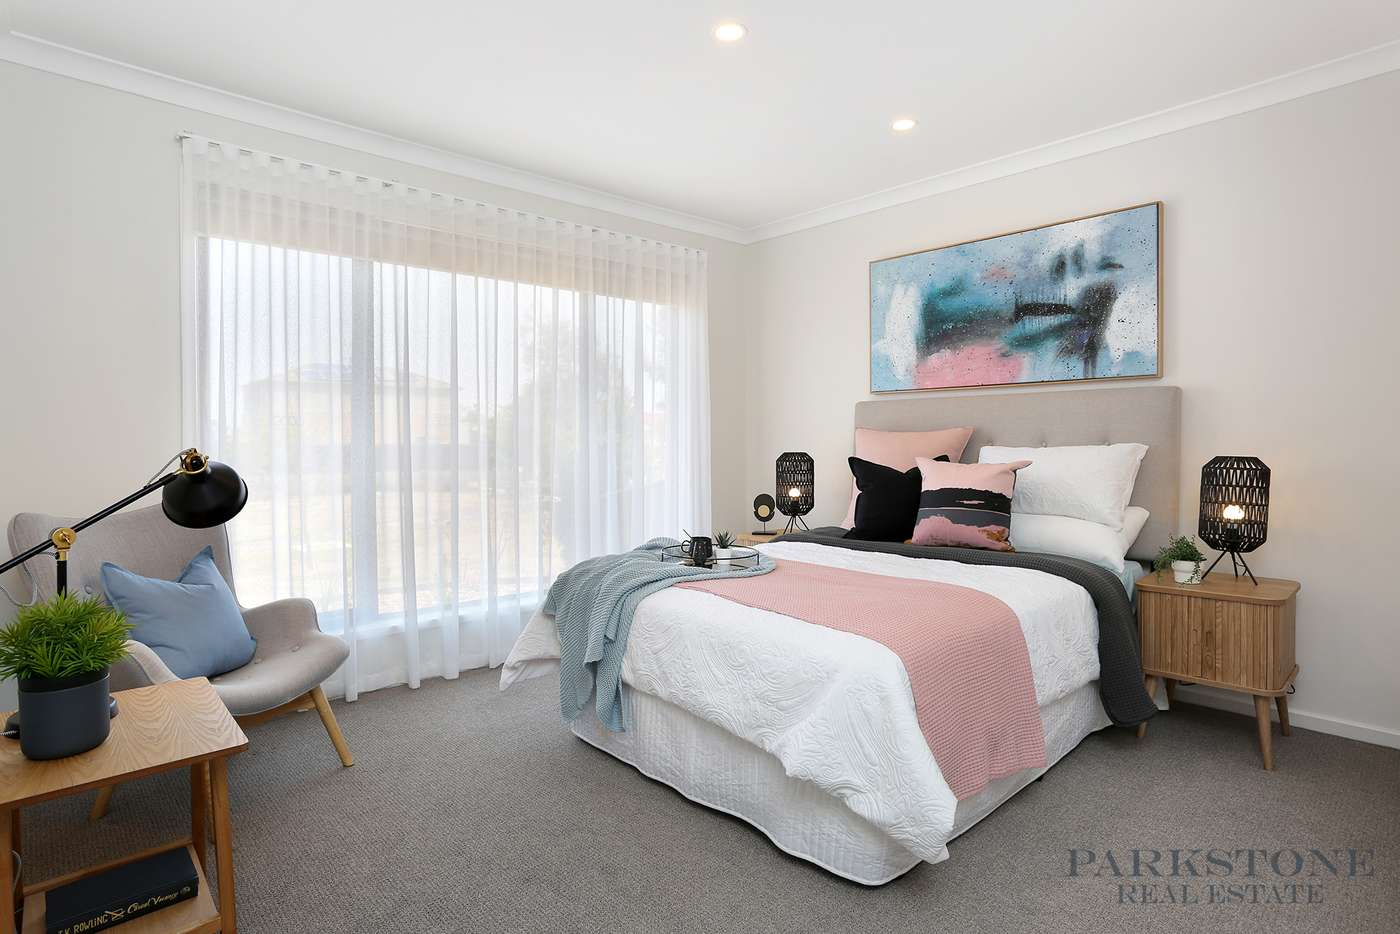 Sixth view of Homely house listing, 3 Lysterfield Walk, Manor Lakes VIC 3024